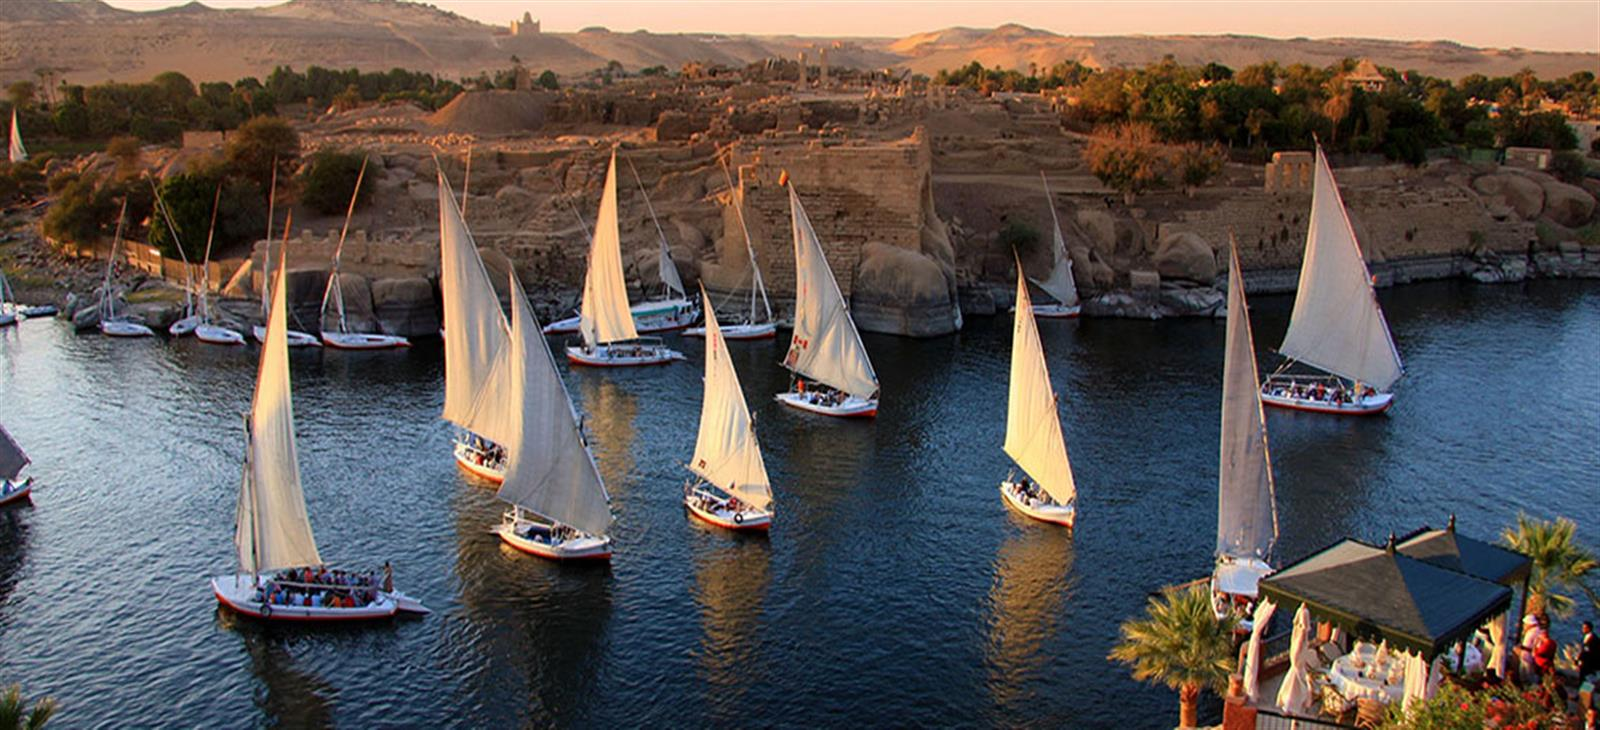 21 days tour all over Egypt